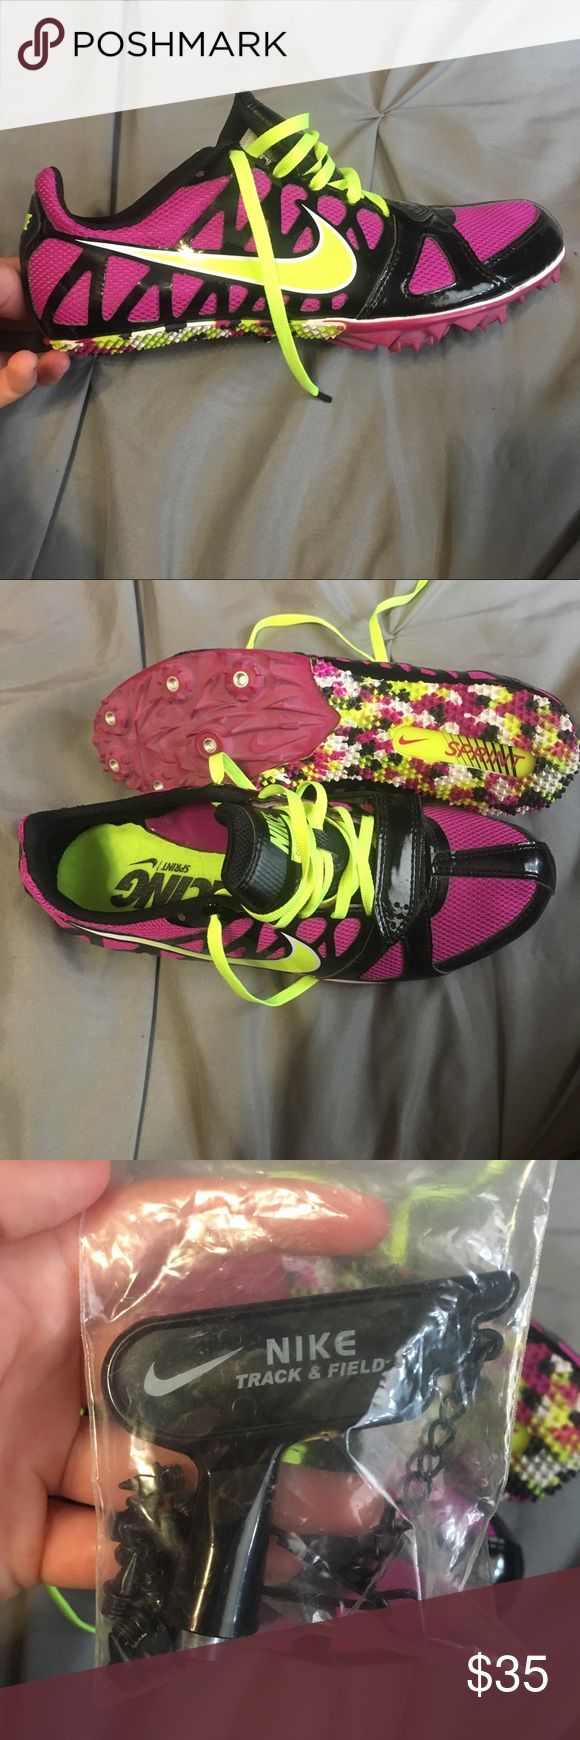 BRAND NEW track running shoes- NWOT These are neon brand new running shoes new without tags never worn --- super light weight Nike Shoes Sneakers